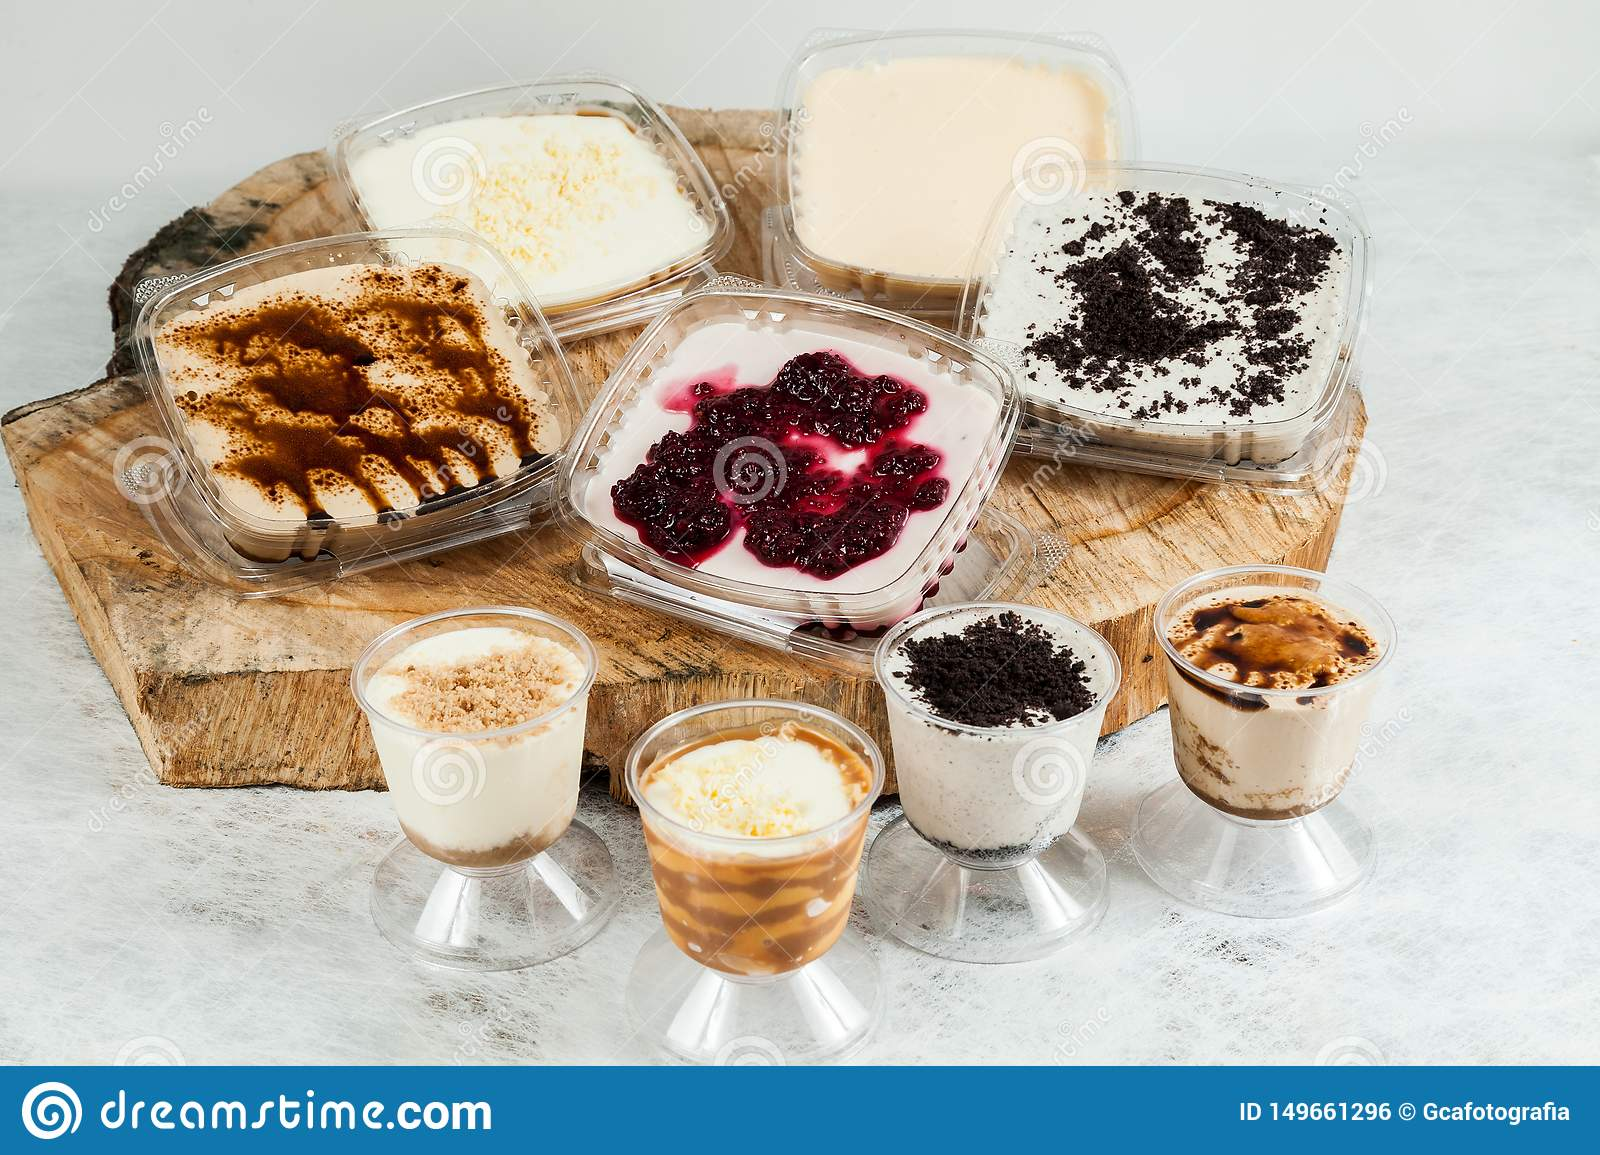 Panna cotta - desserts of different flavors and presentation